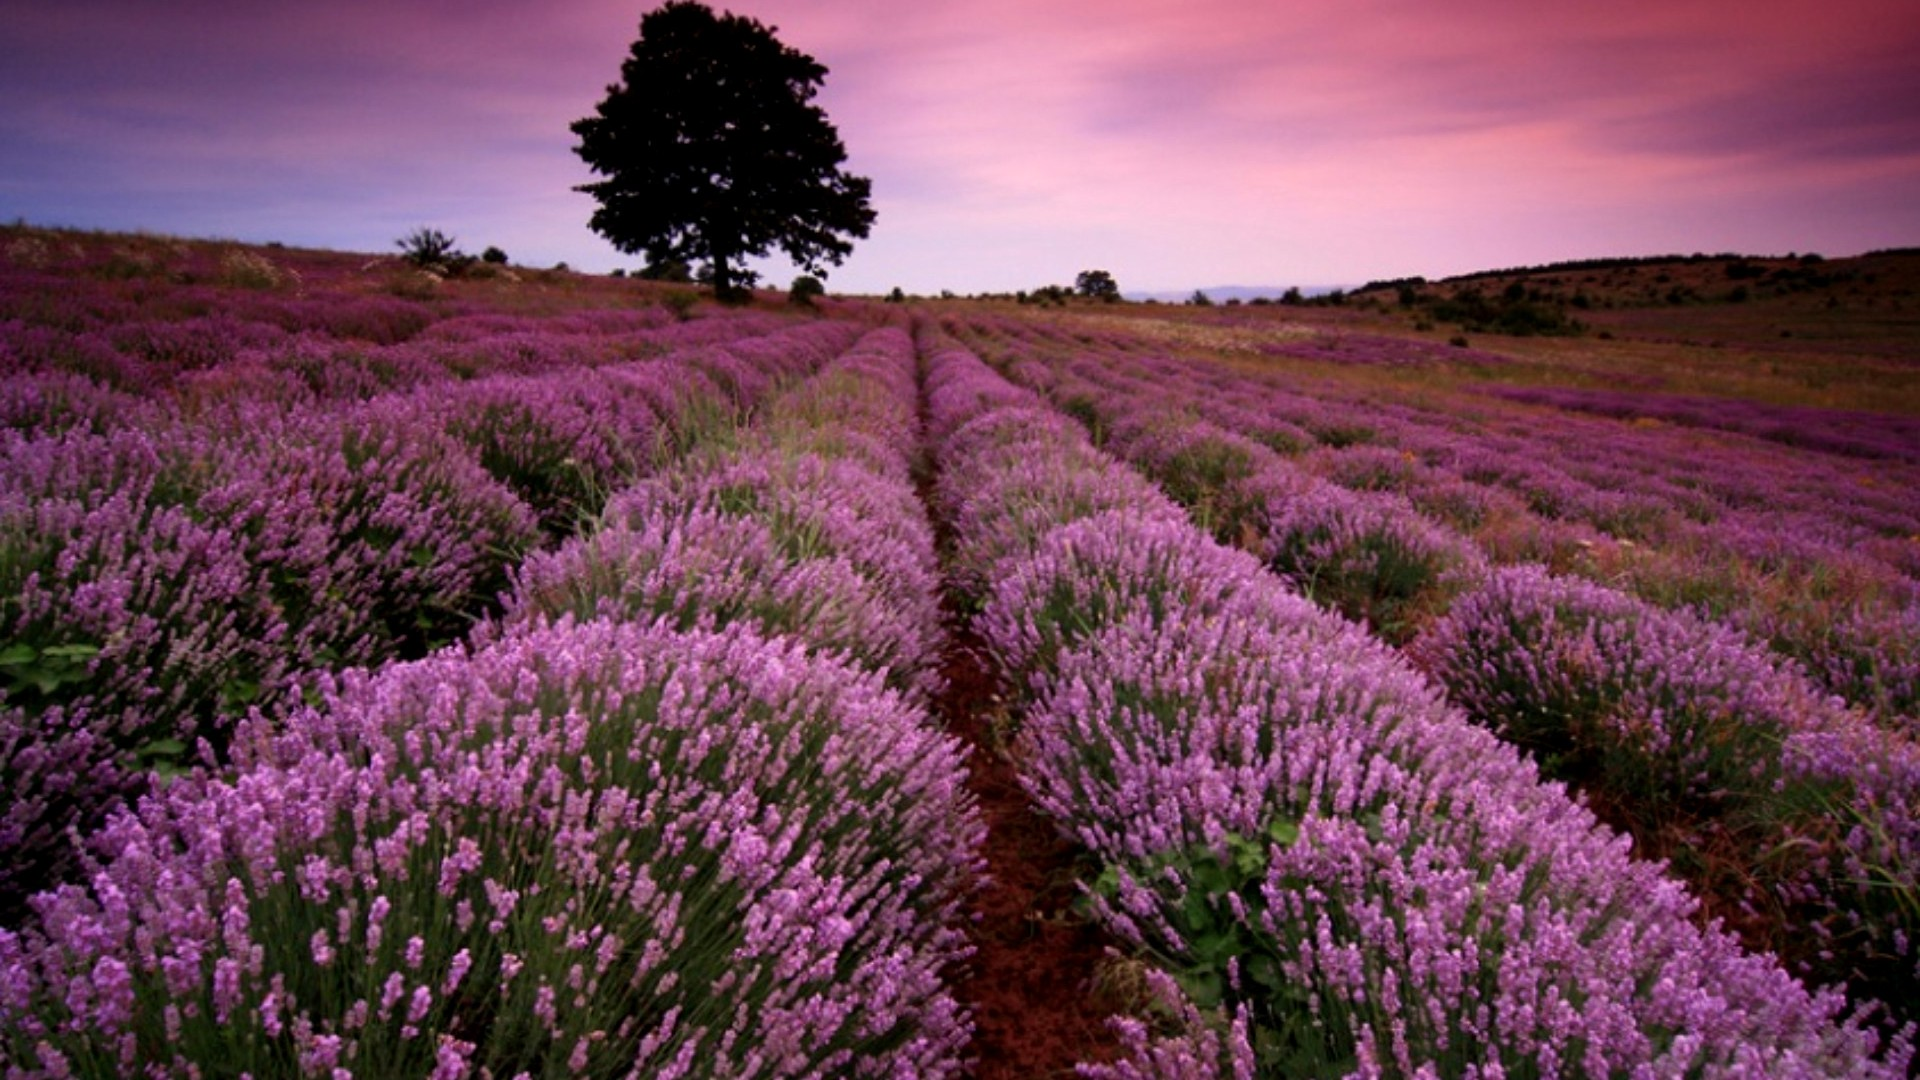 Lavender Desktop Backgrounds   Wallpaper High Definition High 1920x1080